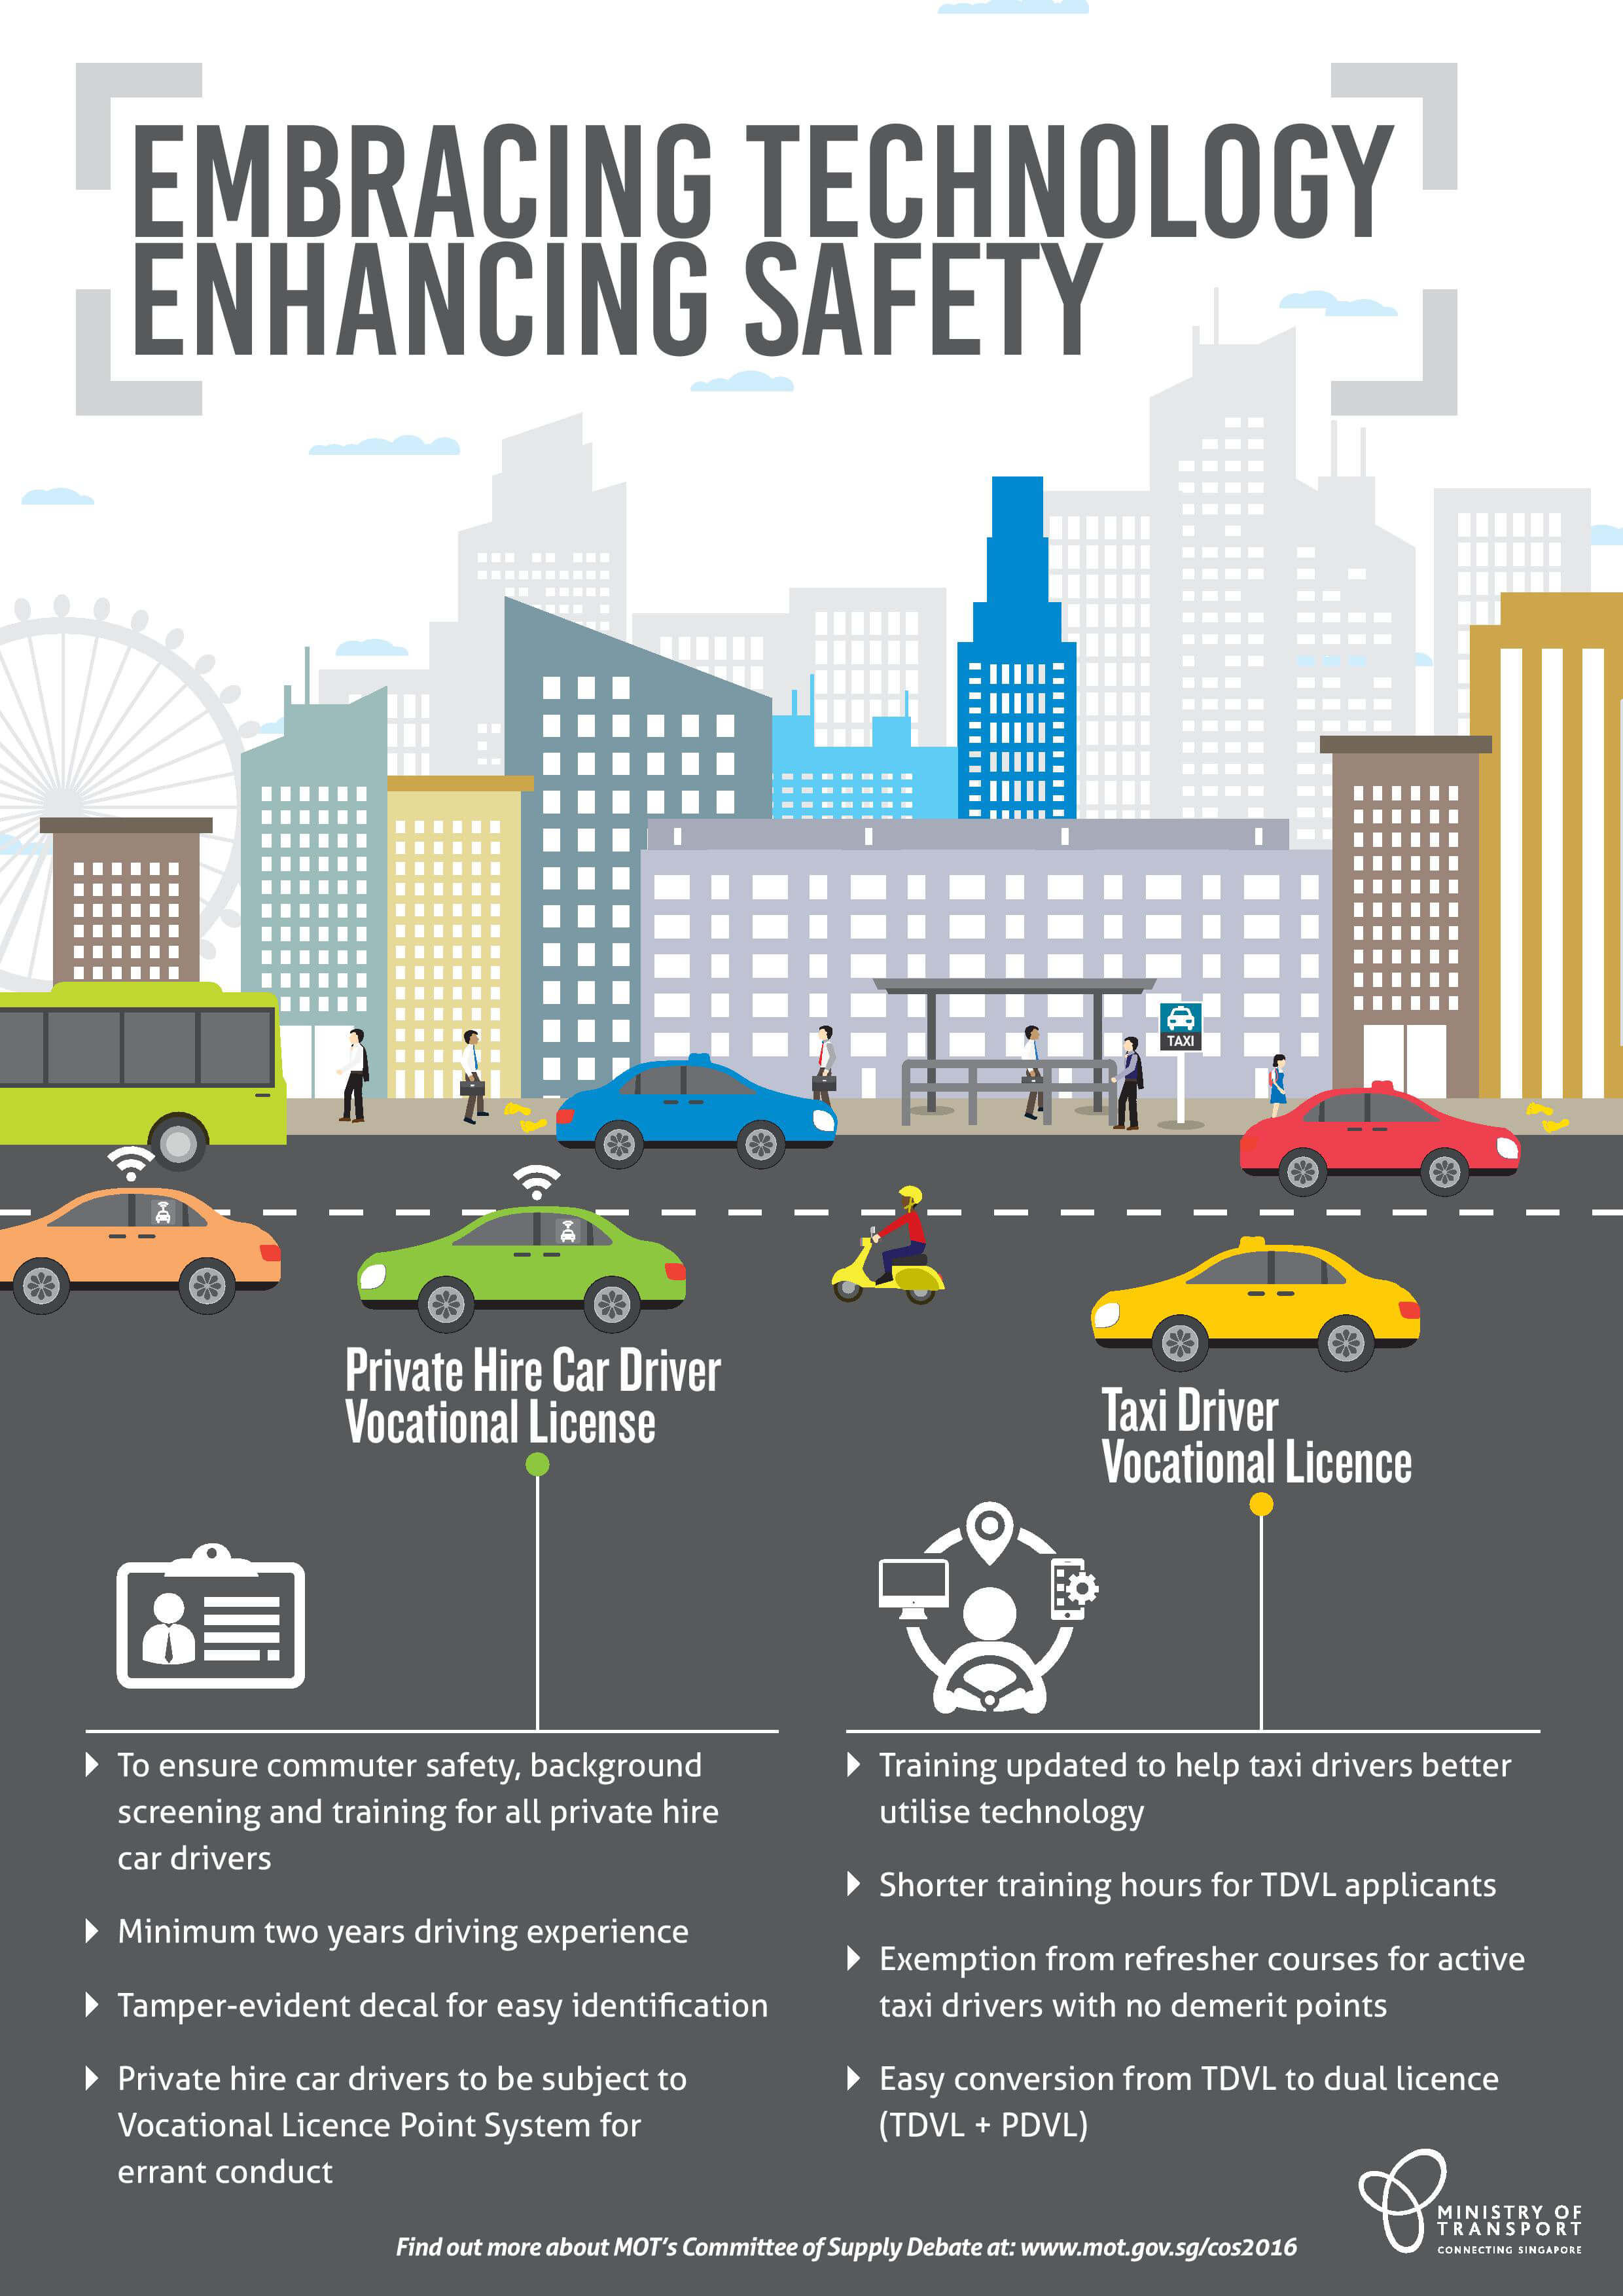 Embracing Technology Enhancing Safety Infographic